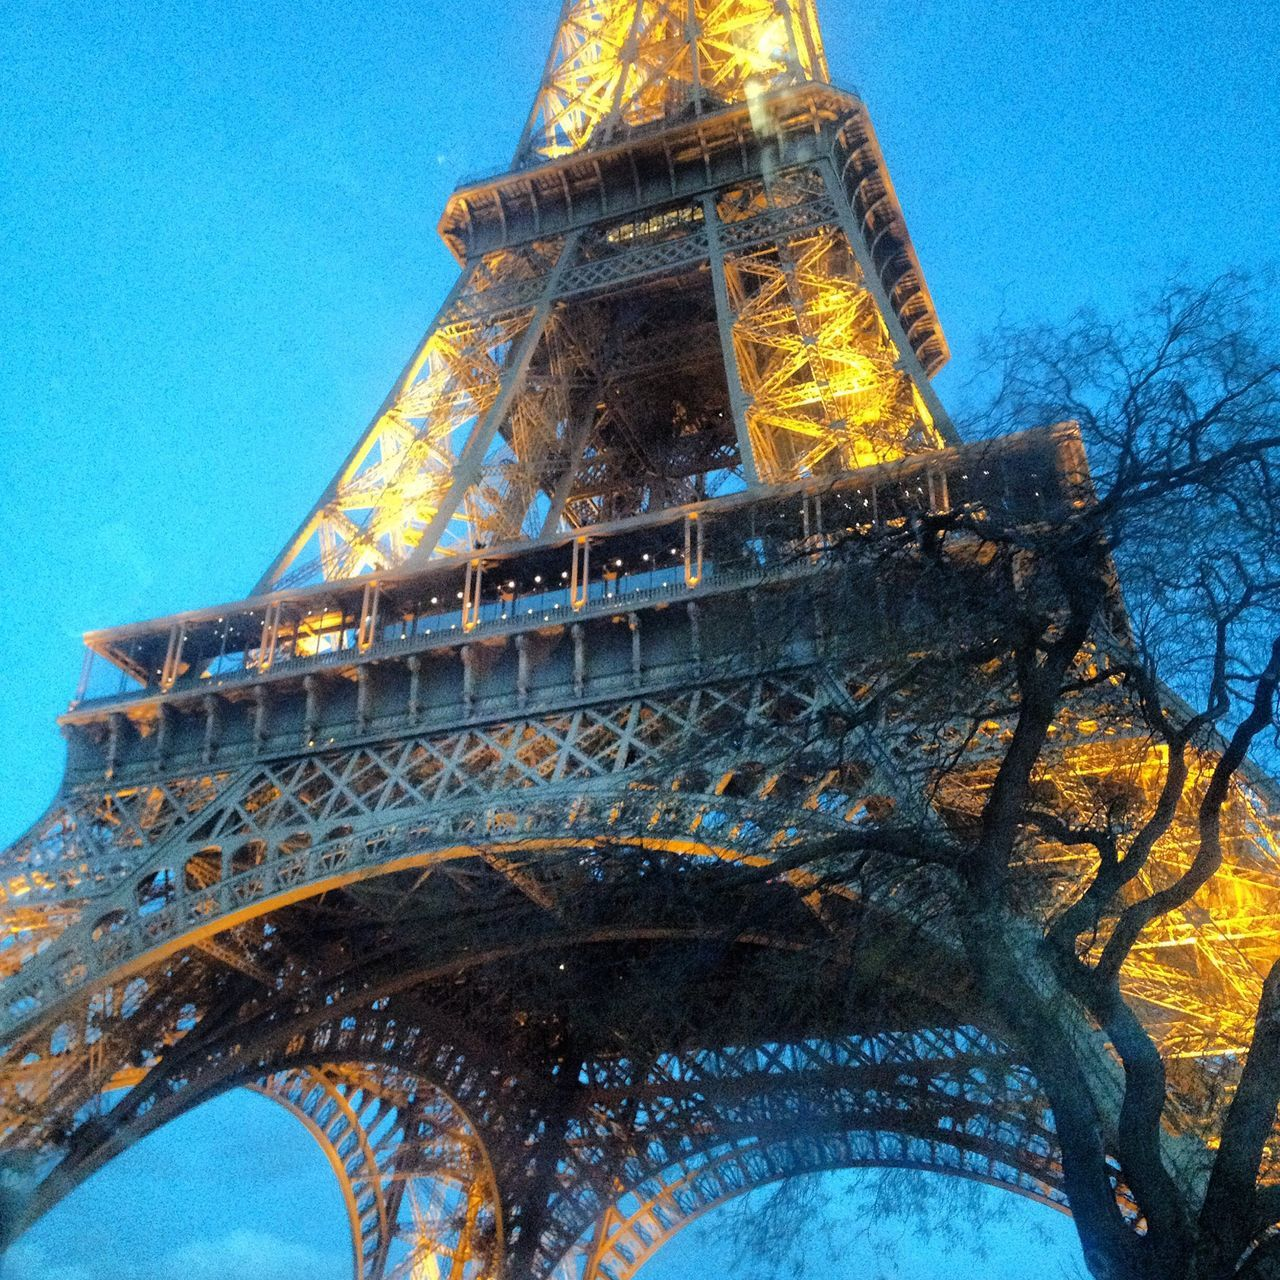 Cities At Night Paris Eiffel Tower Under The Dome Queen Paris In Love <3 Before Sunset Light Up Your Life Hanging Out Happy Sunday In The City